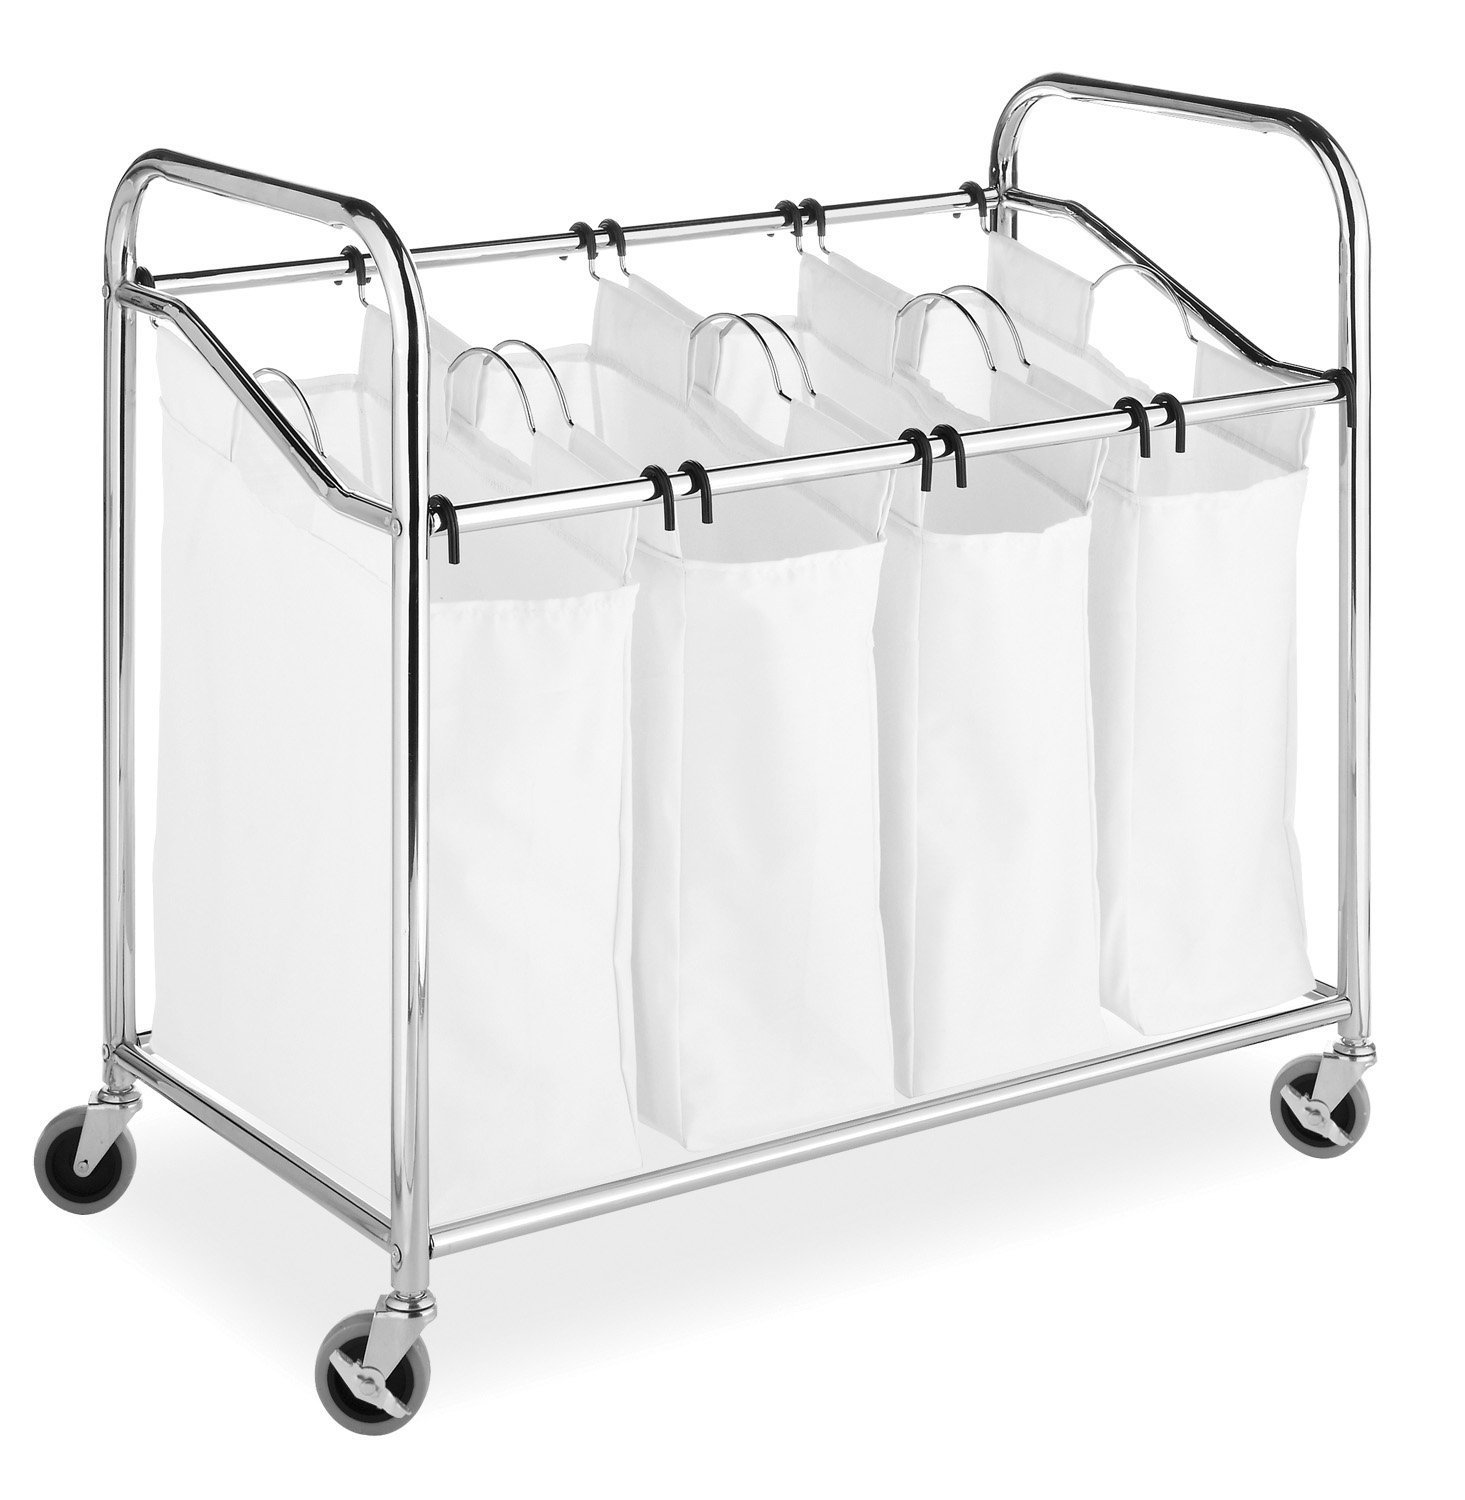 4-Section Laundry Bag Sorter, Chrome & White, Ship from USA,Brand Whitmor by